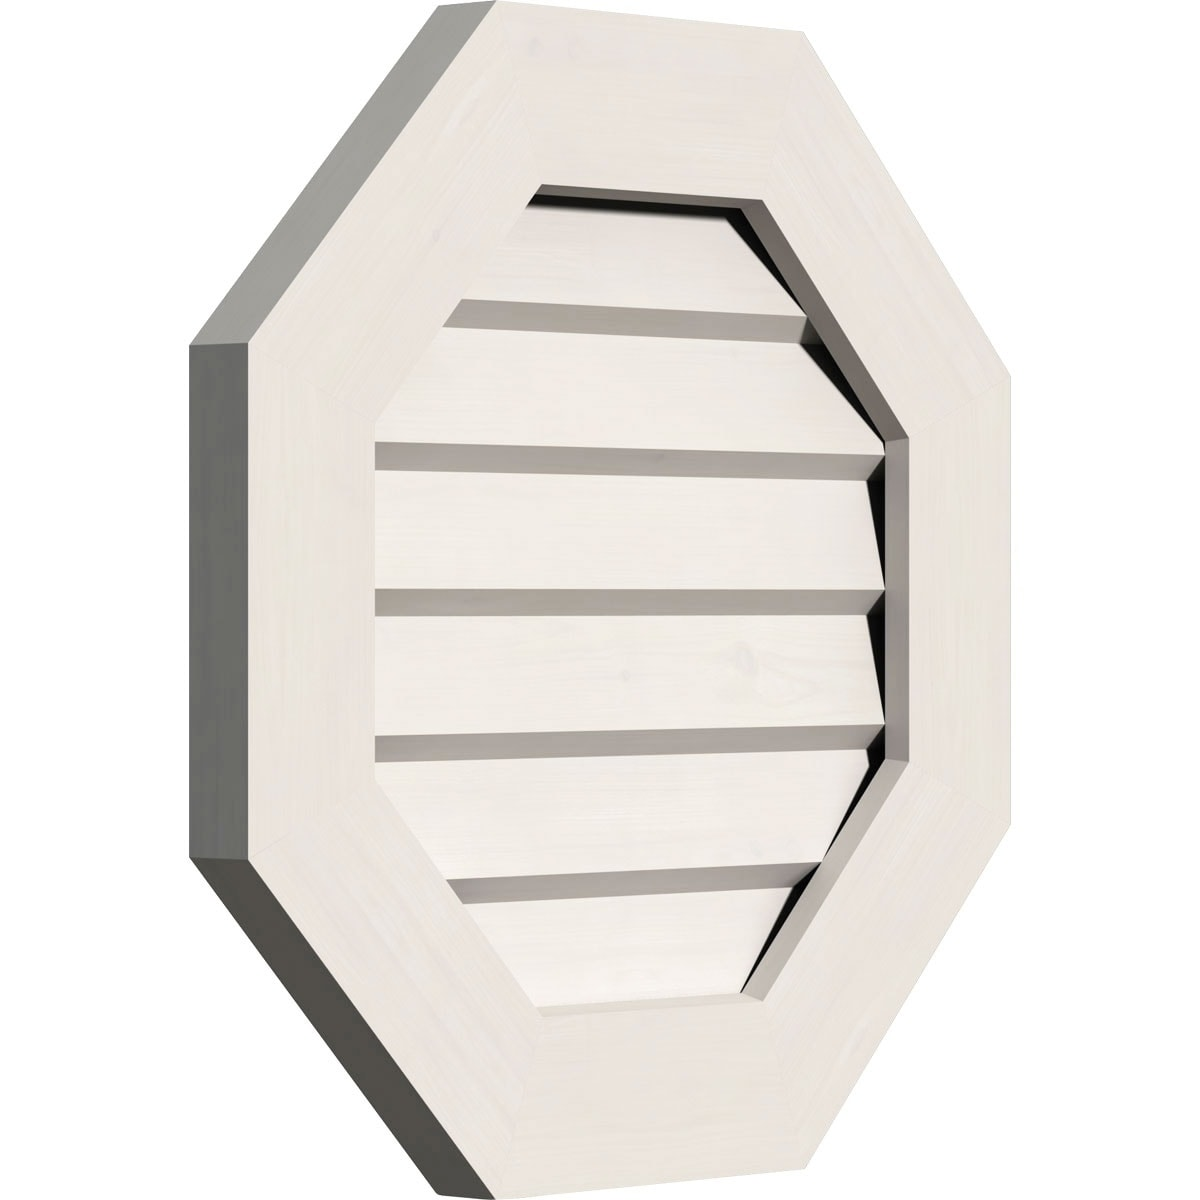 Octagonal Gable Vent (Non-Functional / 22W x 22H)